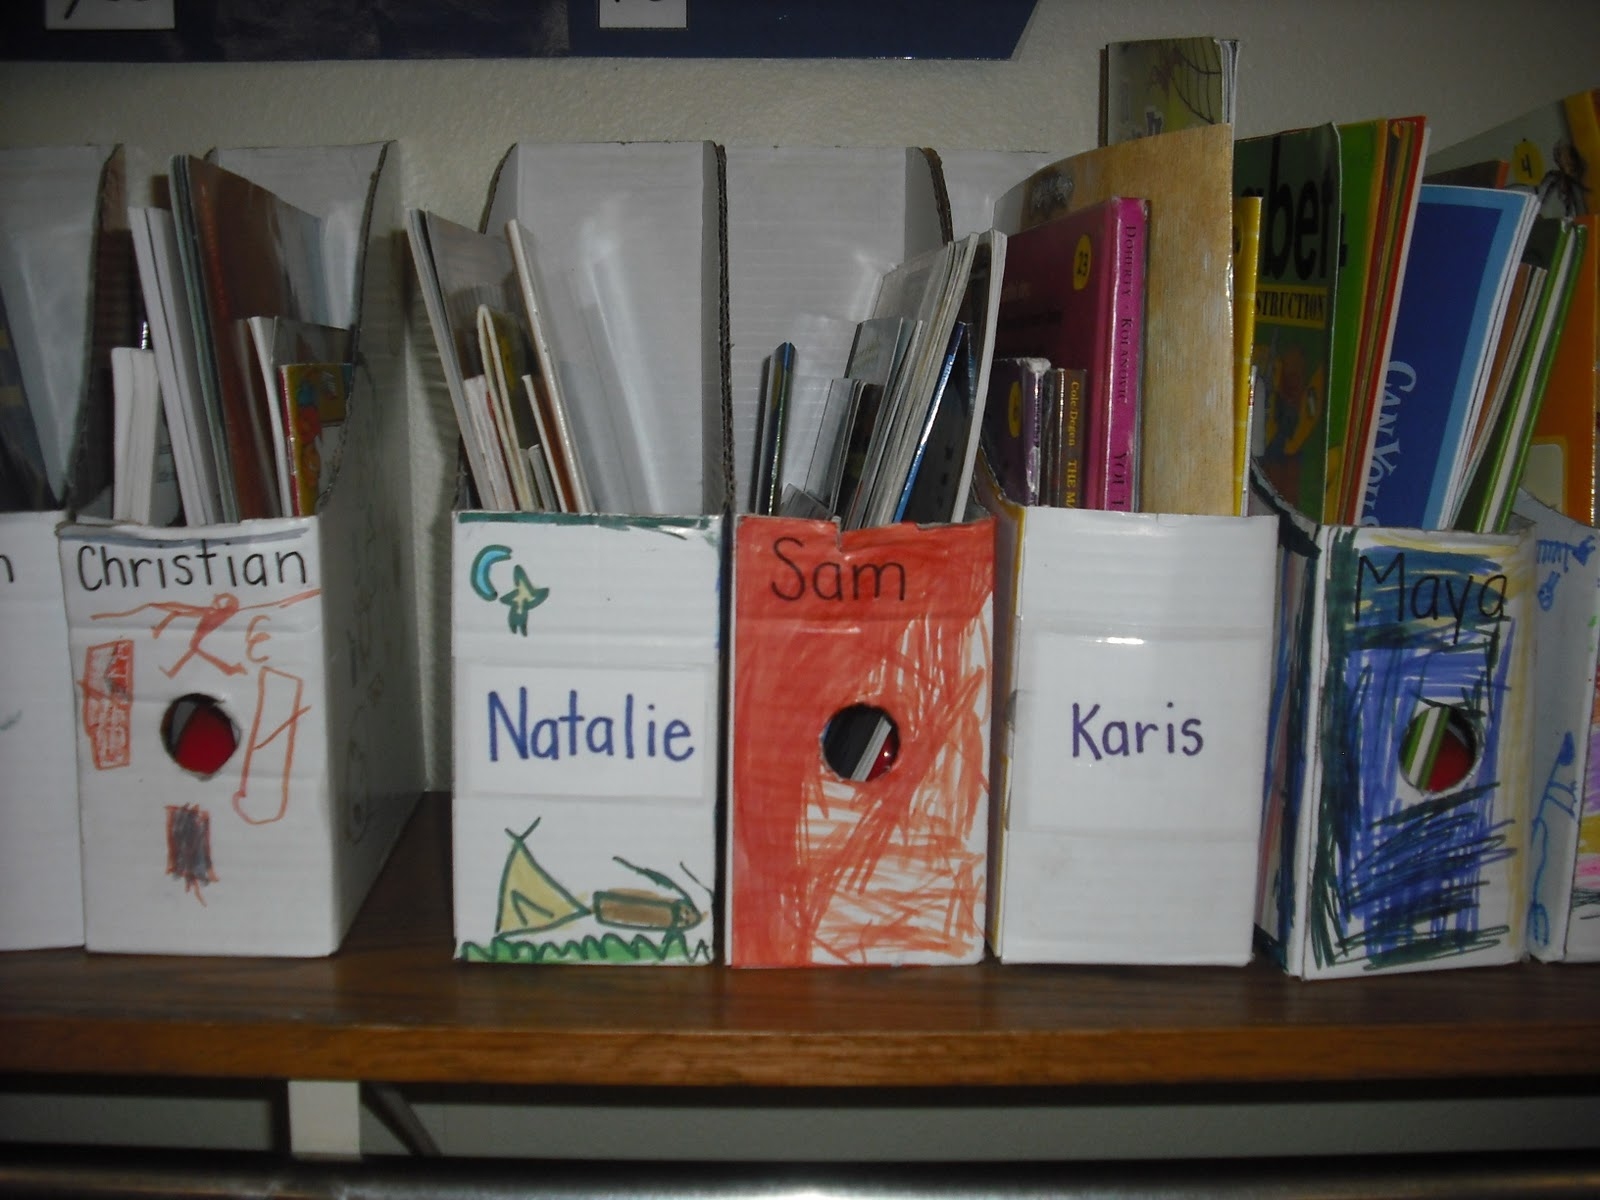 ... this component of Daily 5 can be enjoyable for the students and the  teacher. Here is a picture of some of my kinder cuties' book boxes.